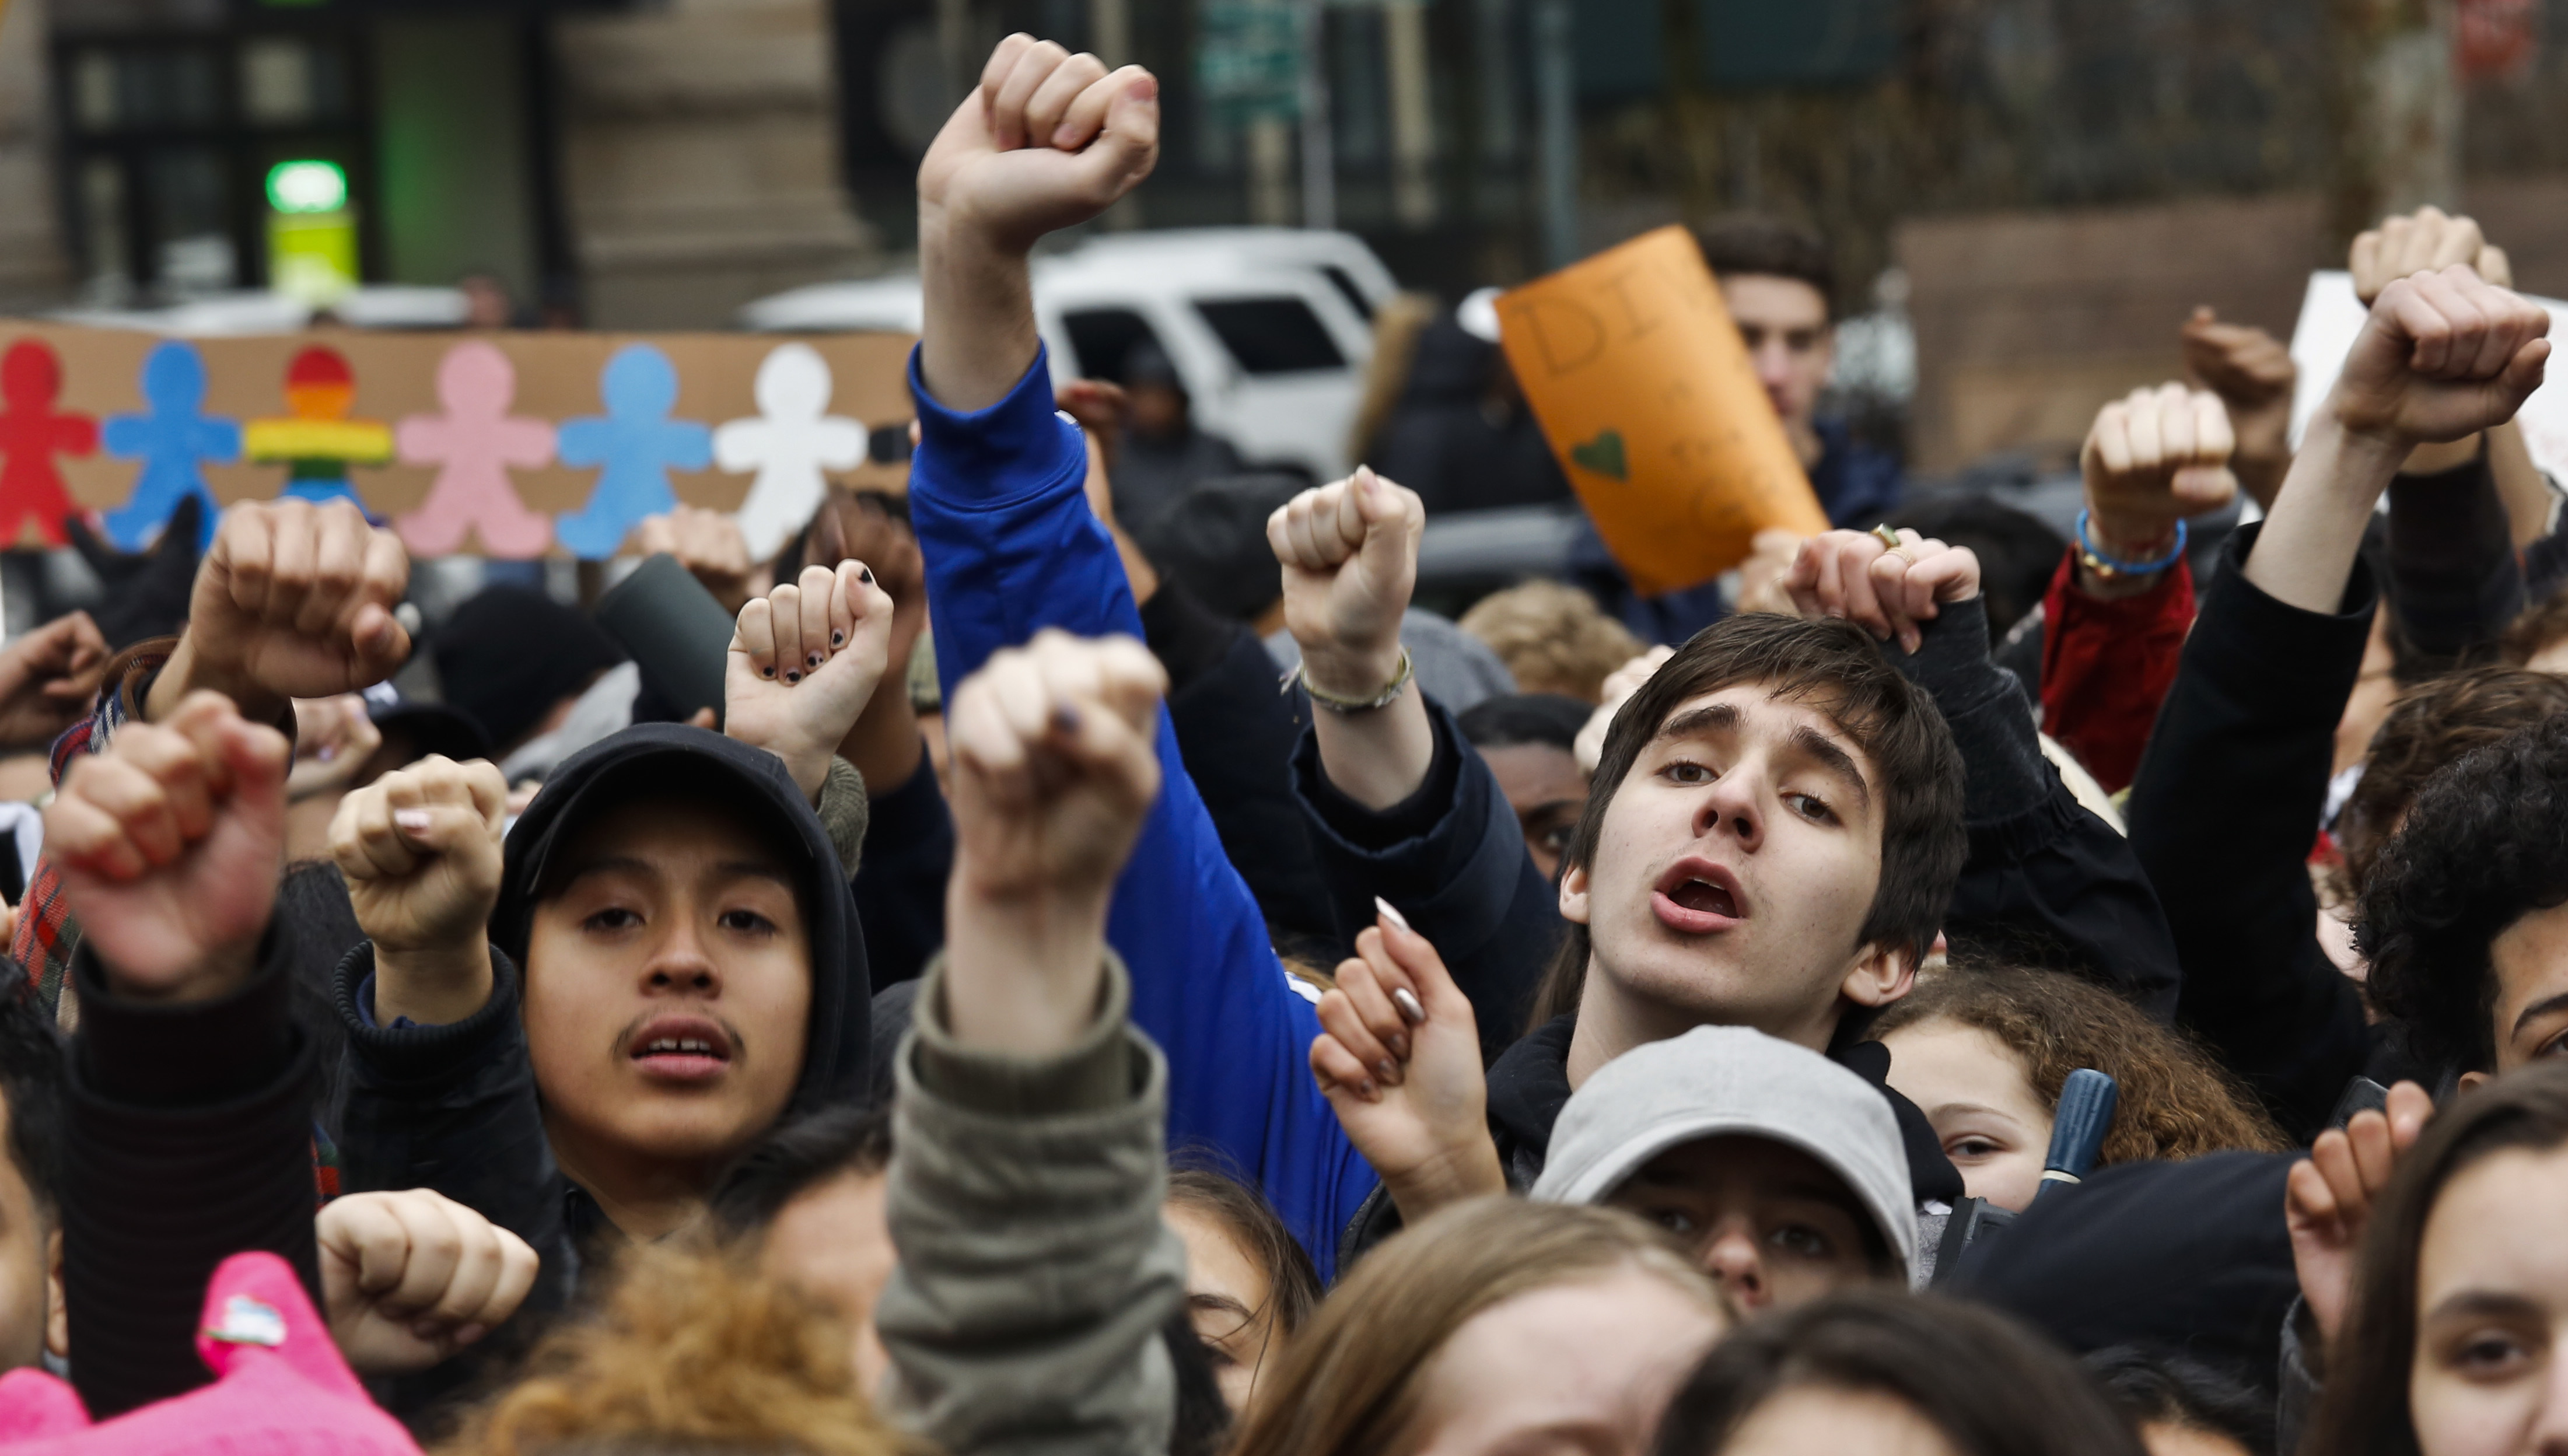 In New York's Foley Square, students from high schools and colleges protest with clenched fists, during a rally against President Donald Trump's executive order banning travel from seven Muslim-majority nations.